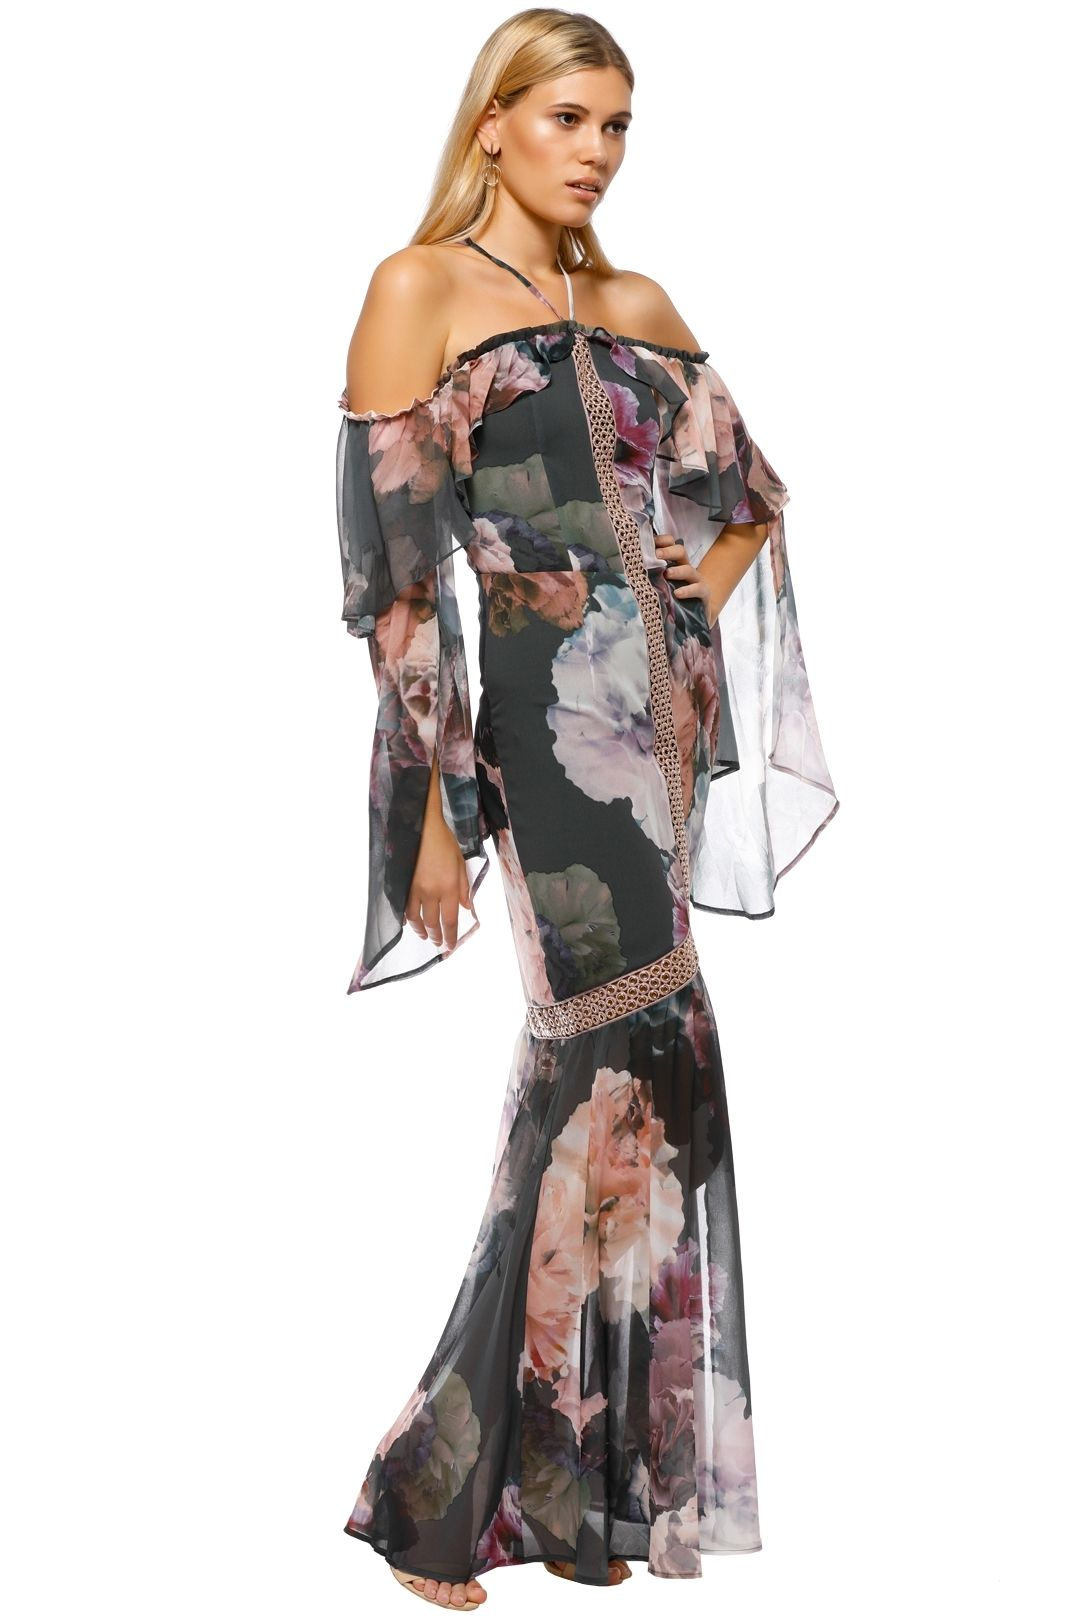 We Are Kindred - Valentina Split Maxi Dress - Gray Pink Floral - Side